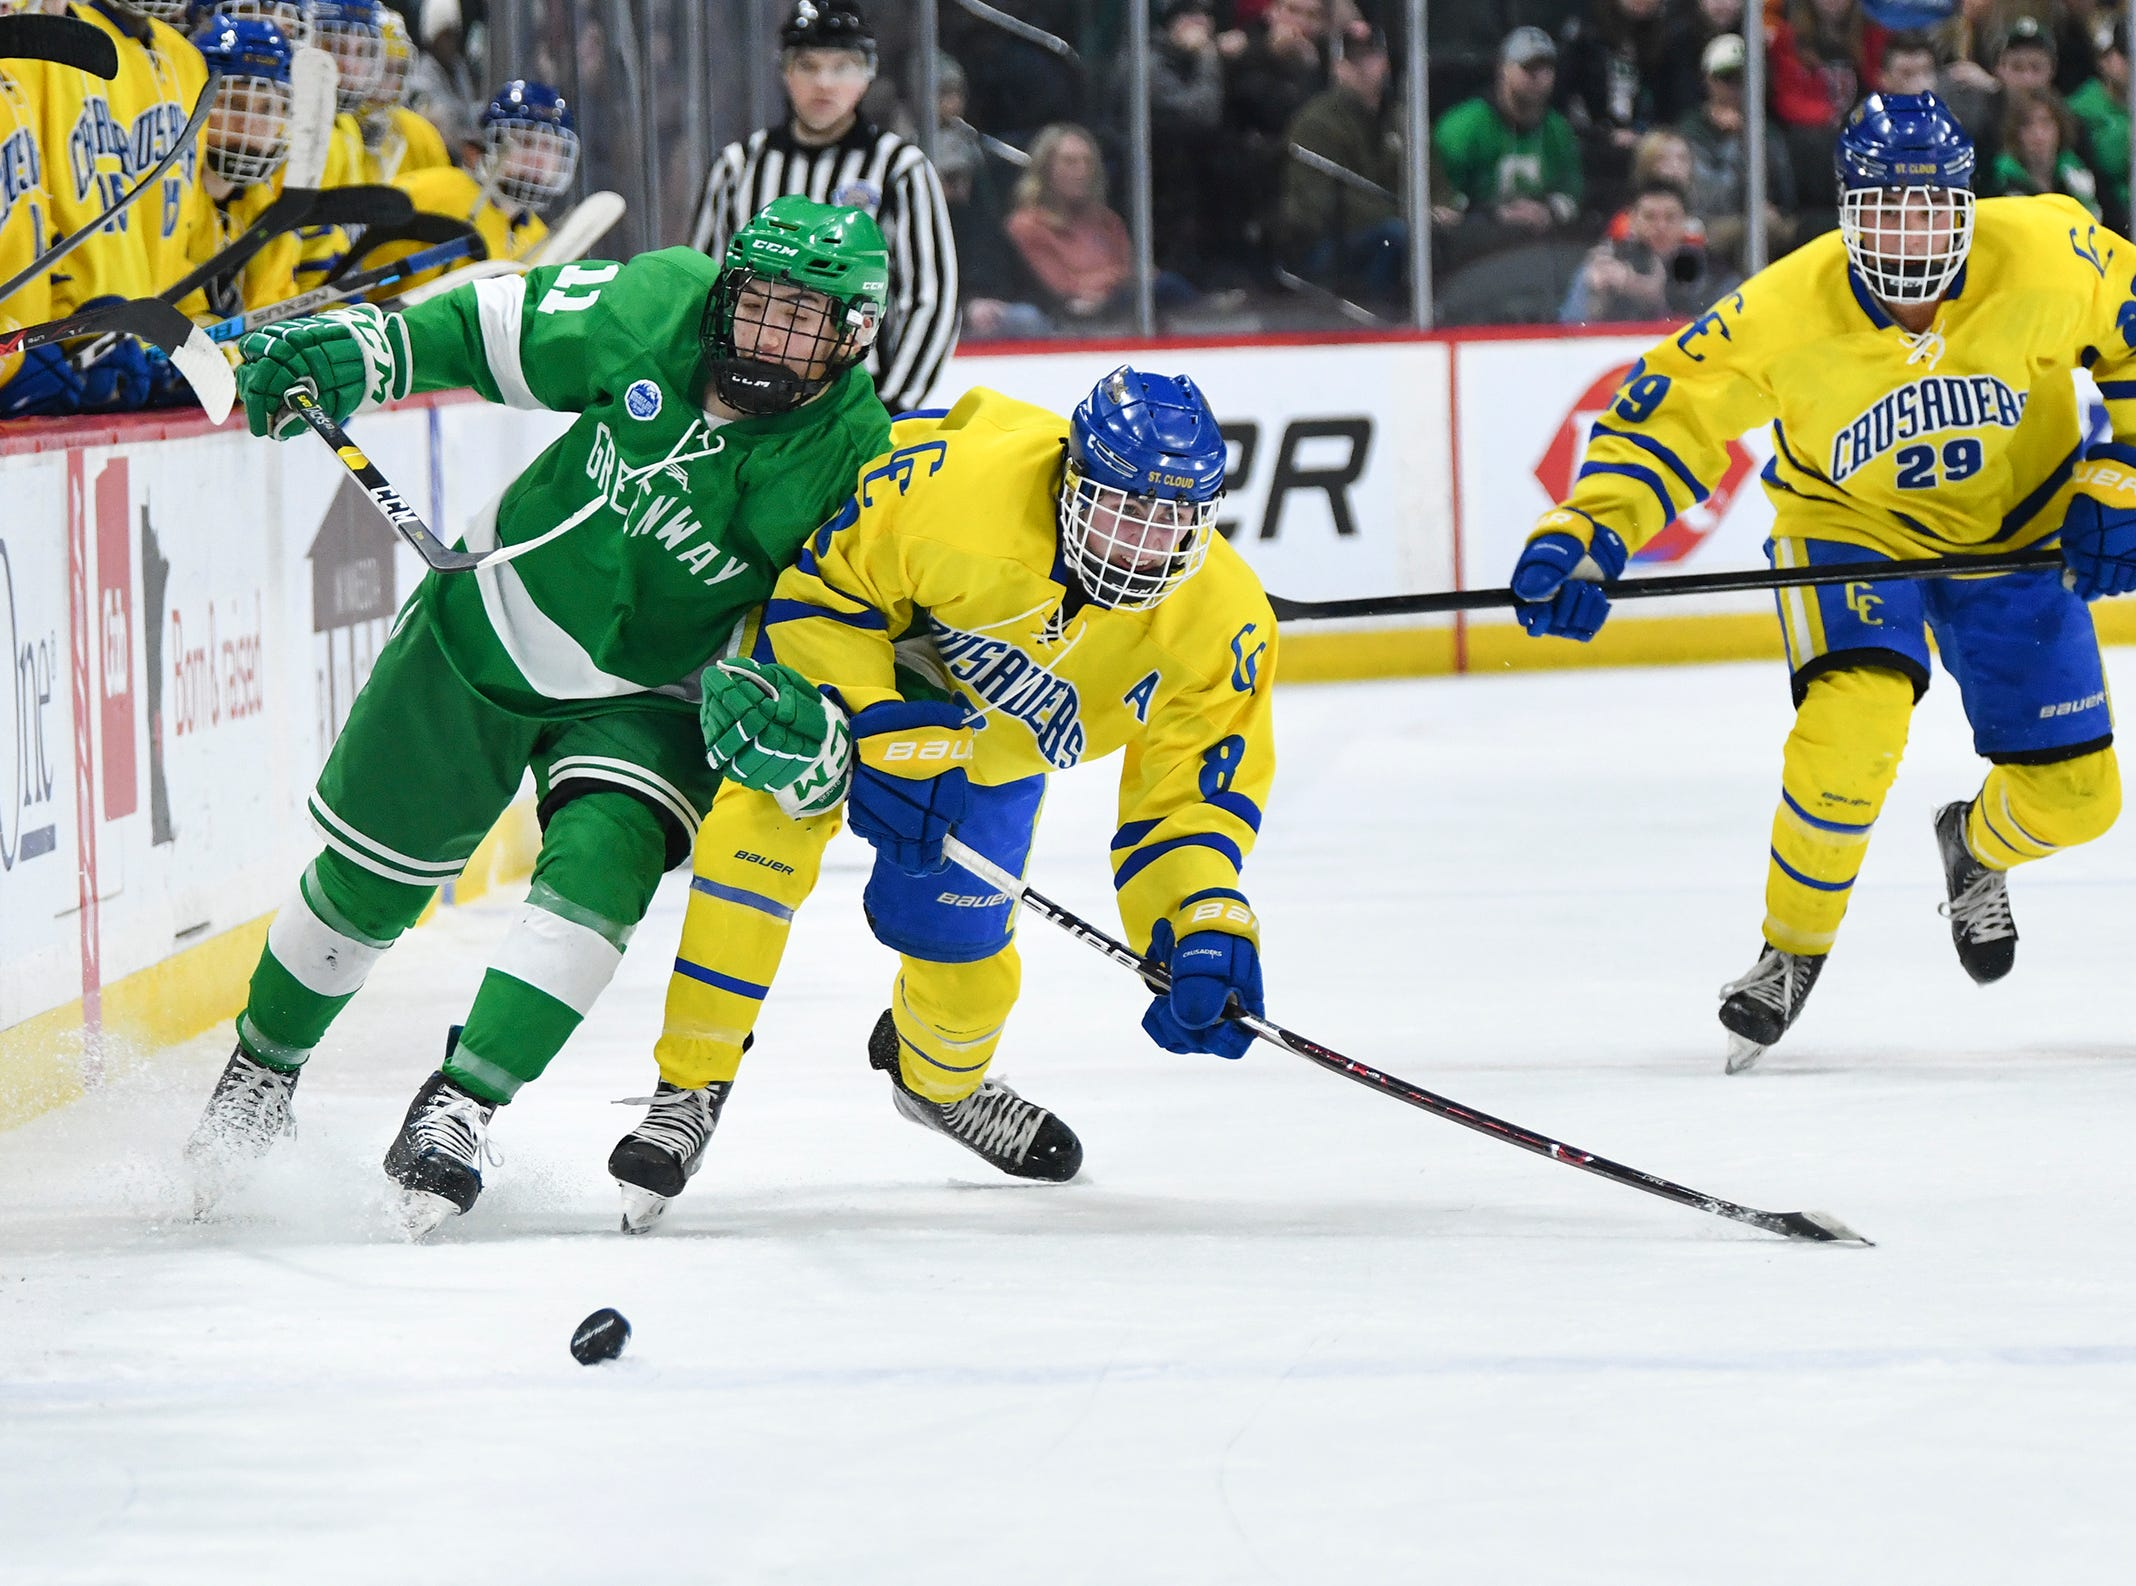 Players battle for control of the puck during the state Class A championship game Saturday, March 9, 2019, at the Xcel Energy Center in St. Paul.